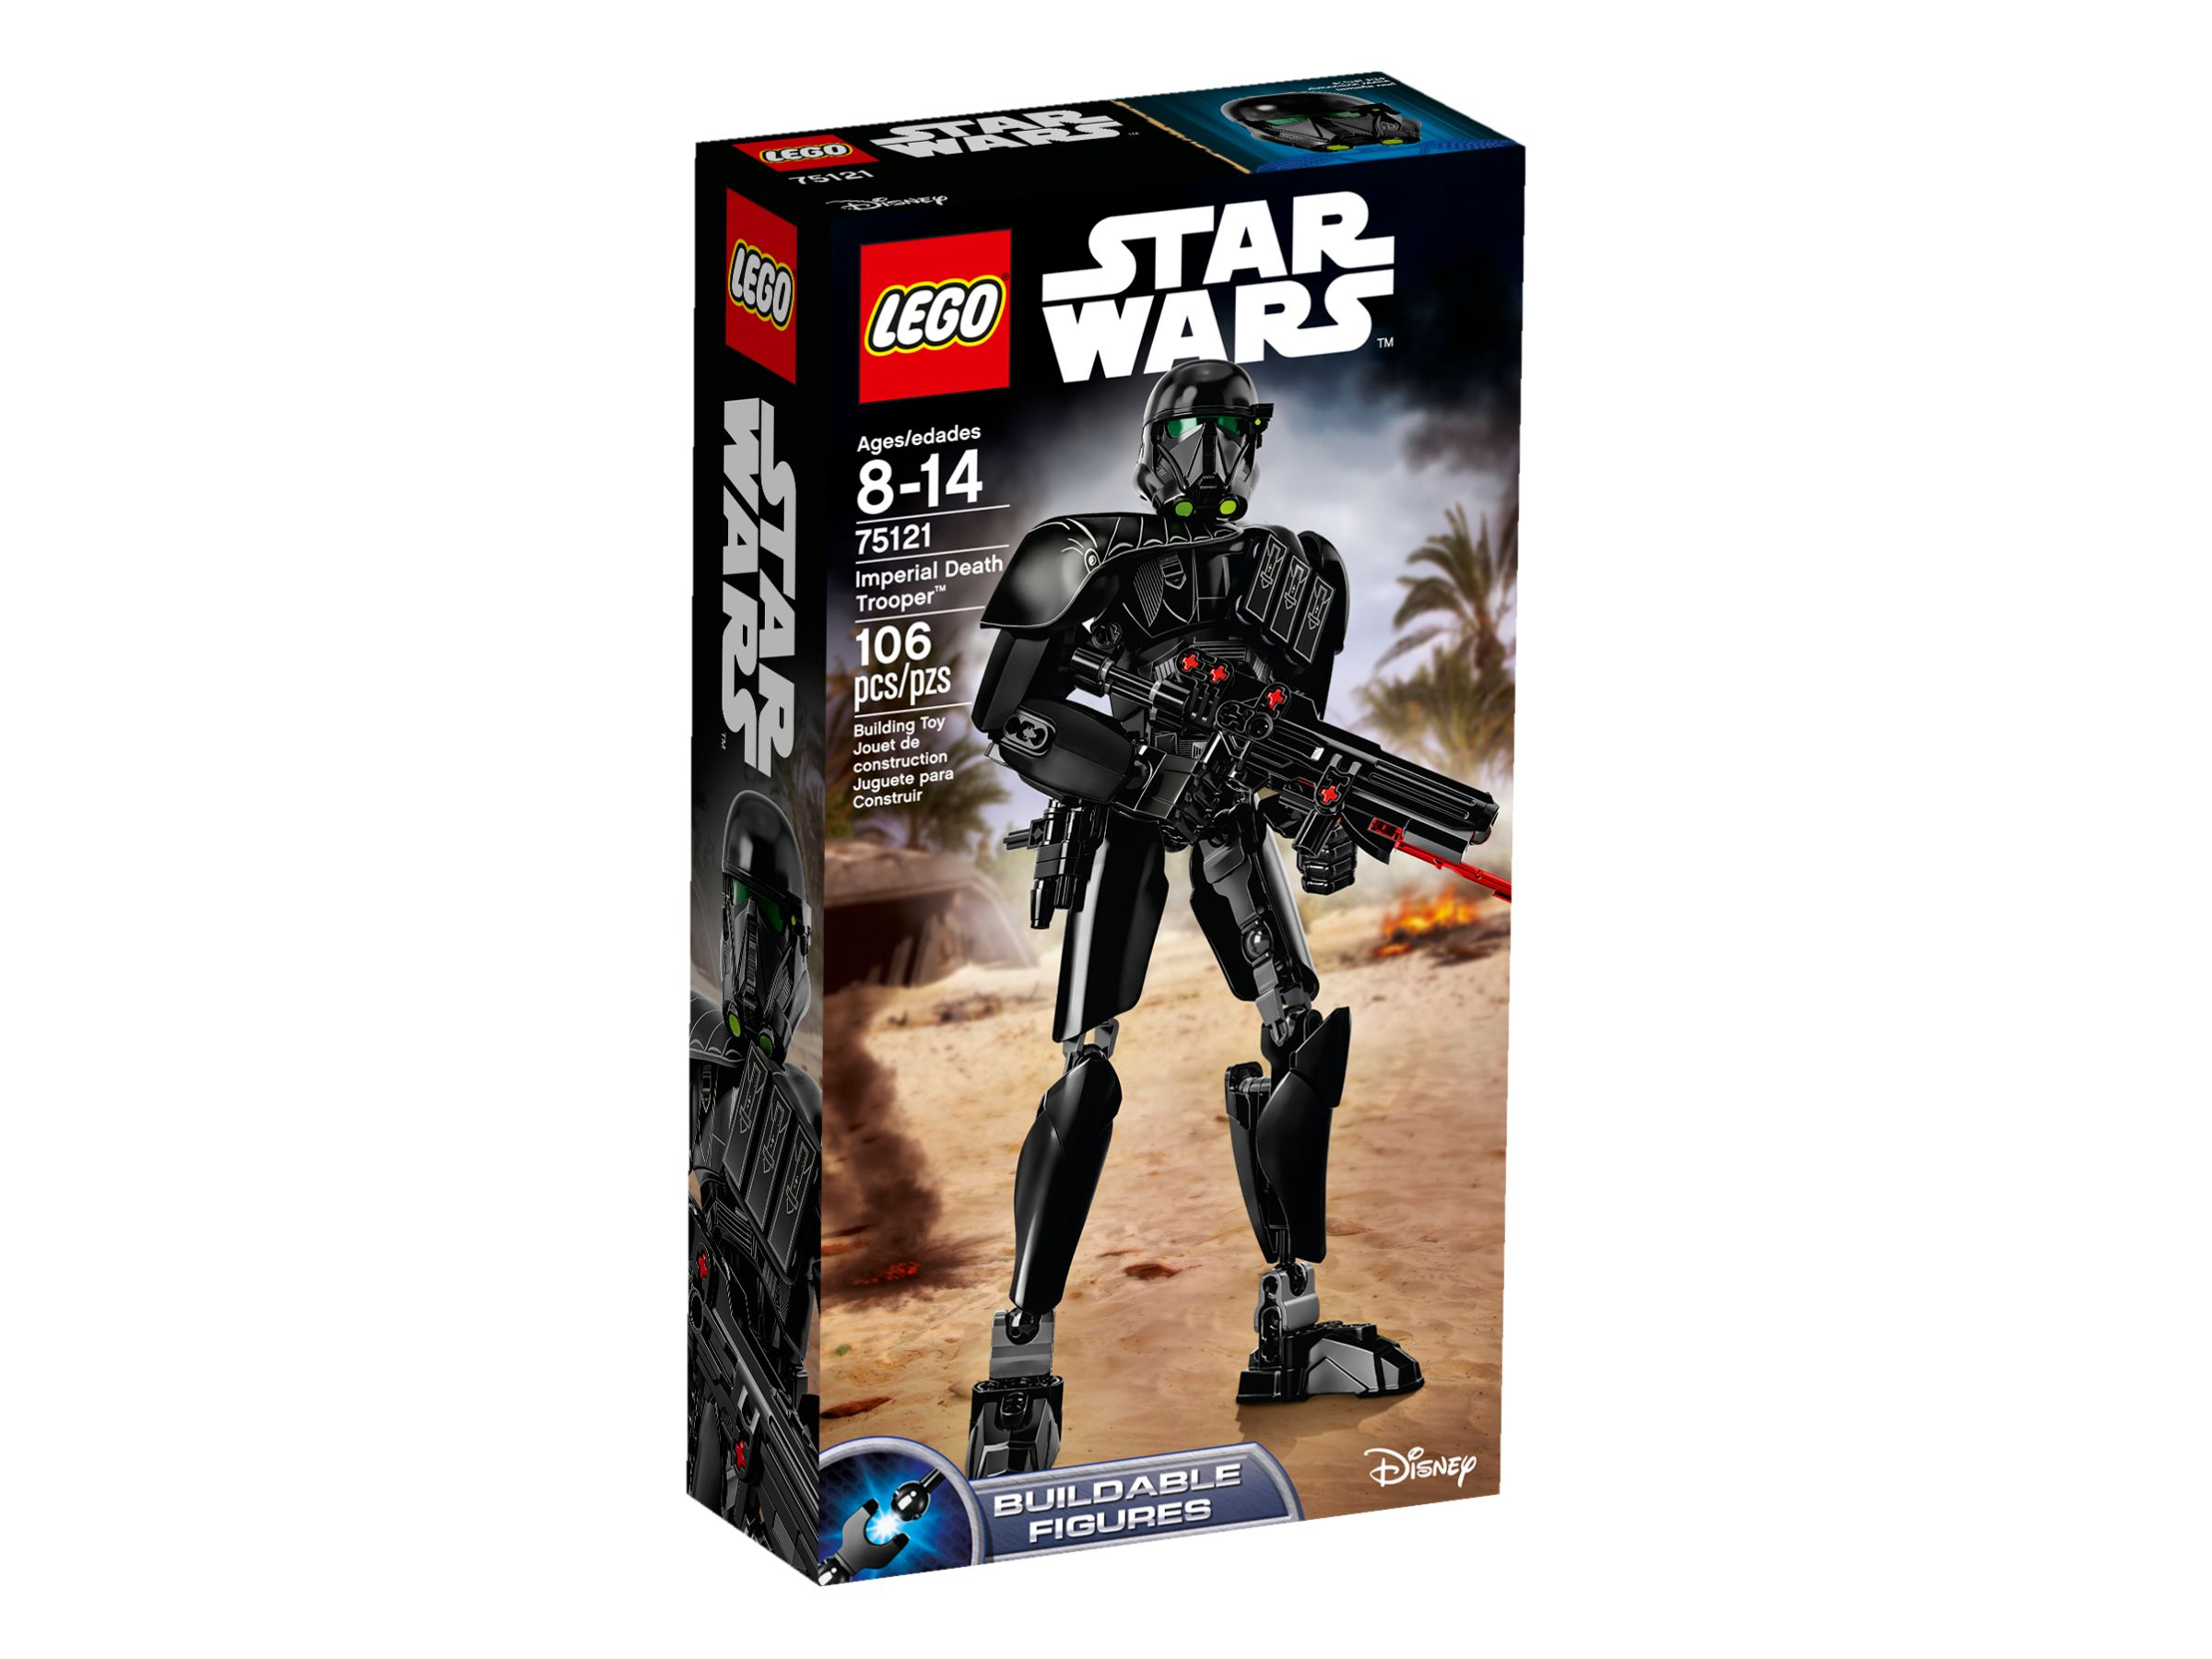 LEGO Star Wars Buildable Figures 75121 Imperial Death Trooper™ LEGO_75121_alt1.jpg